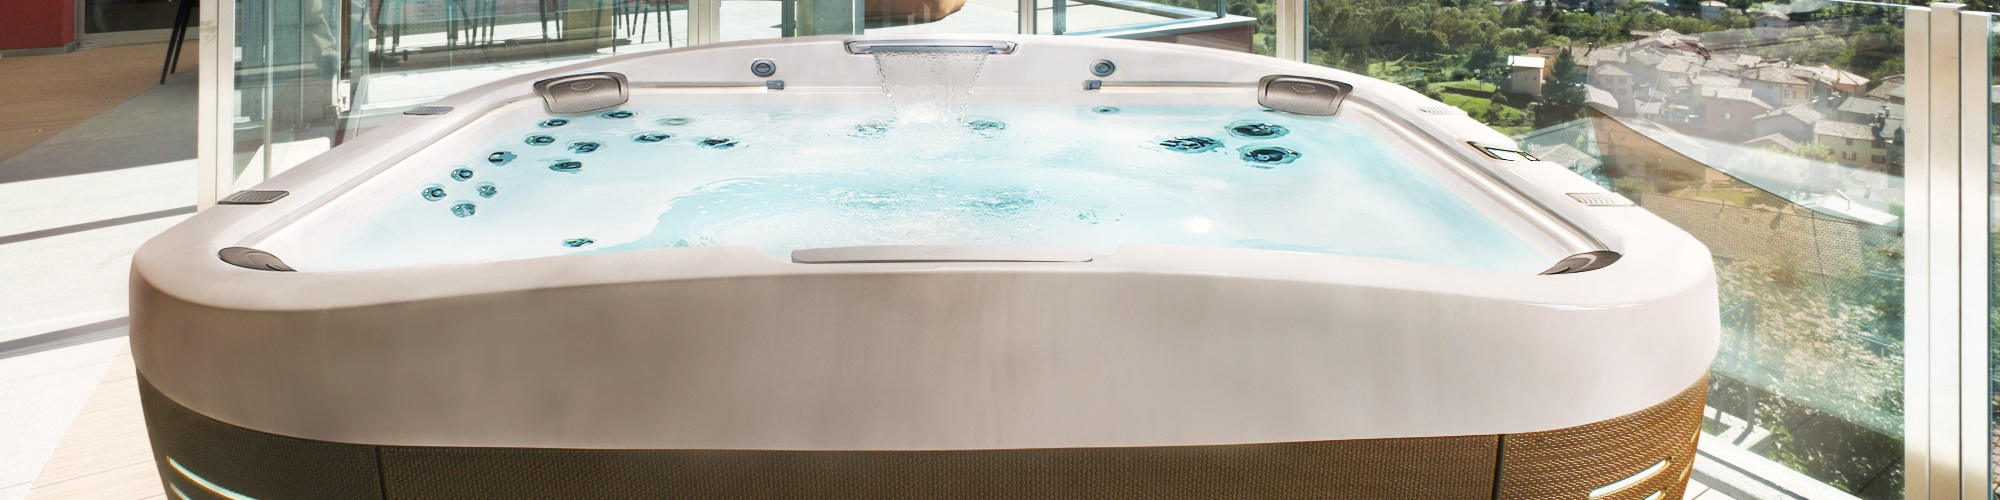 Jacuzzi® HOT TUB - www.wellnessworld-wissmann.de